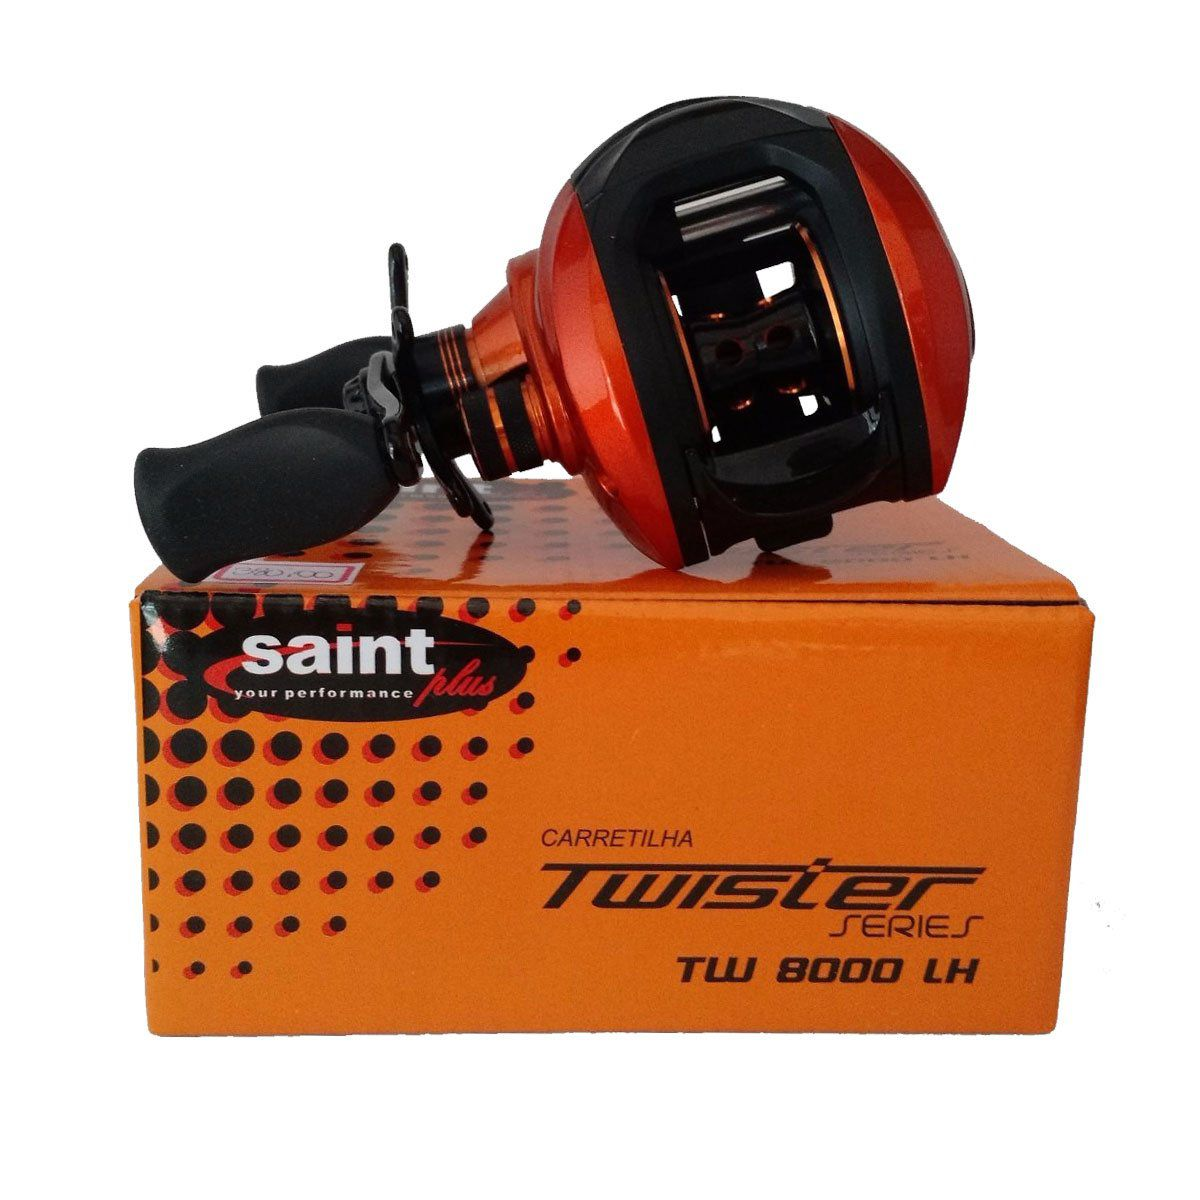 Carretilha Saint Plus Twister 8000 Dir 7,2:1 8 Rolamentos